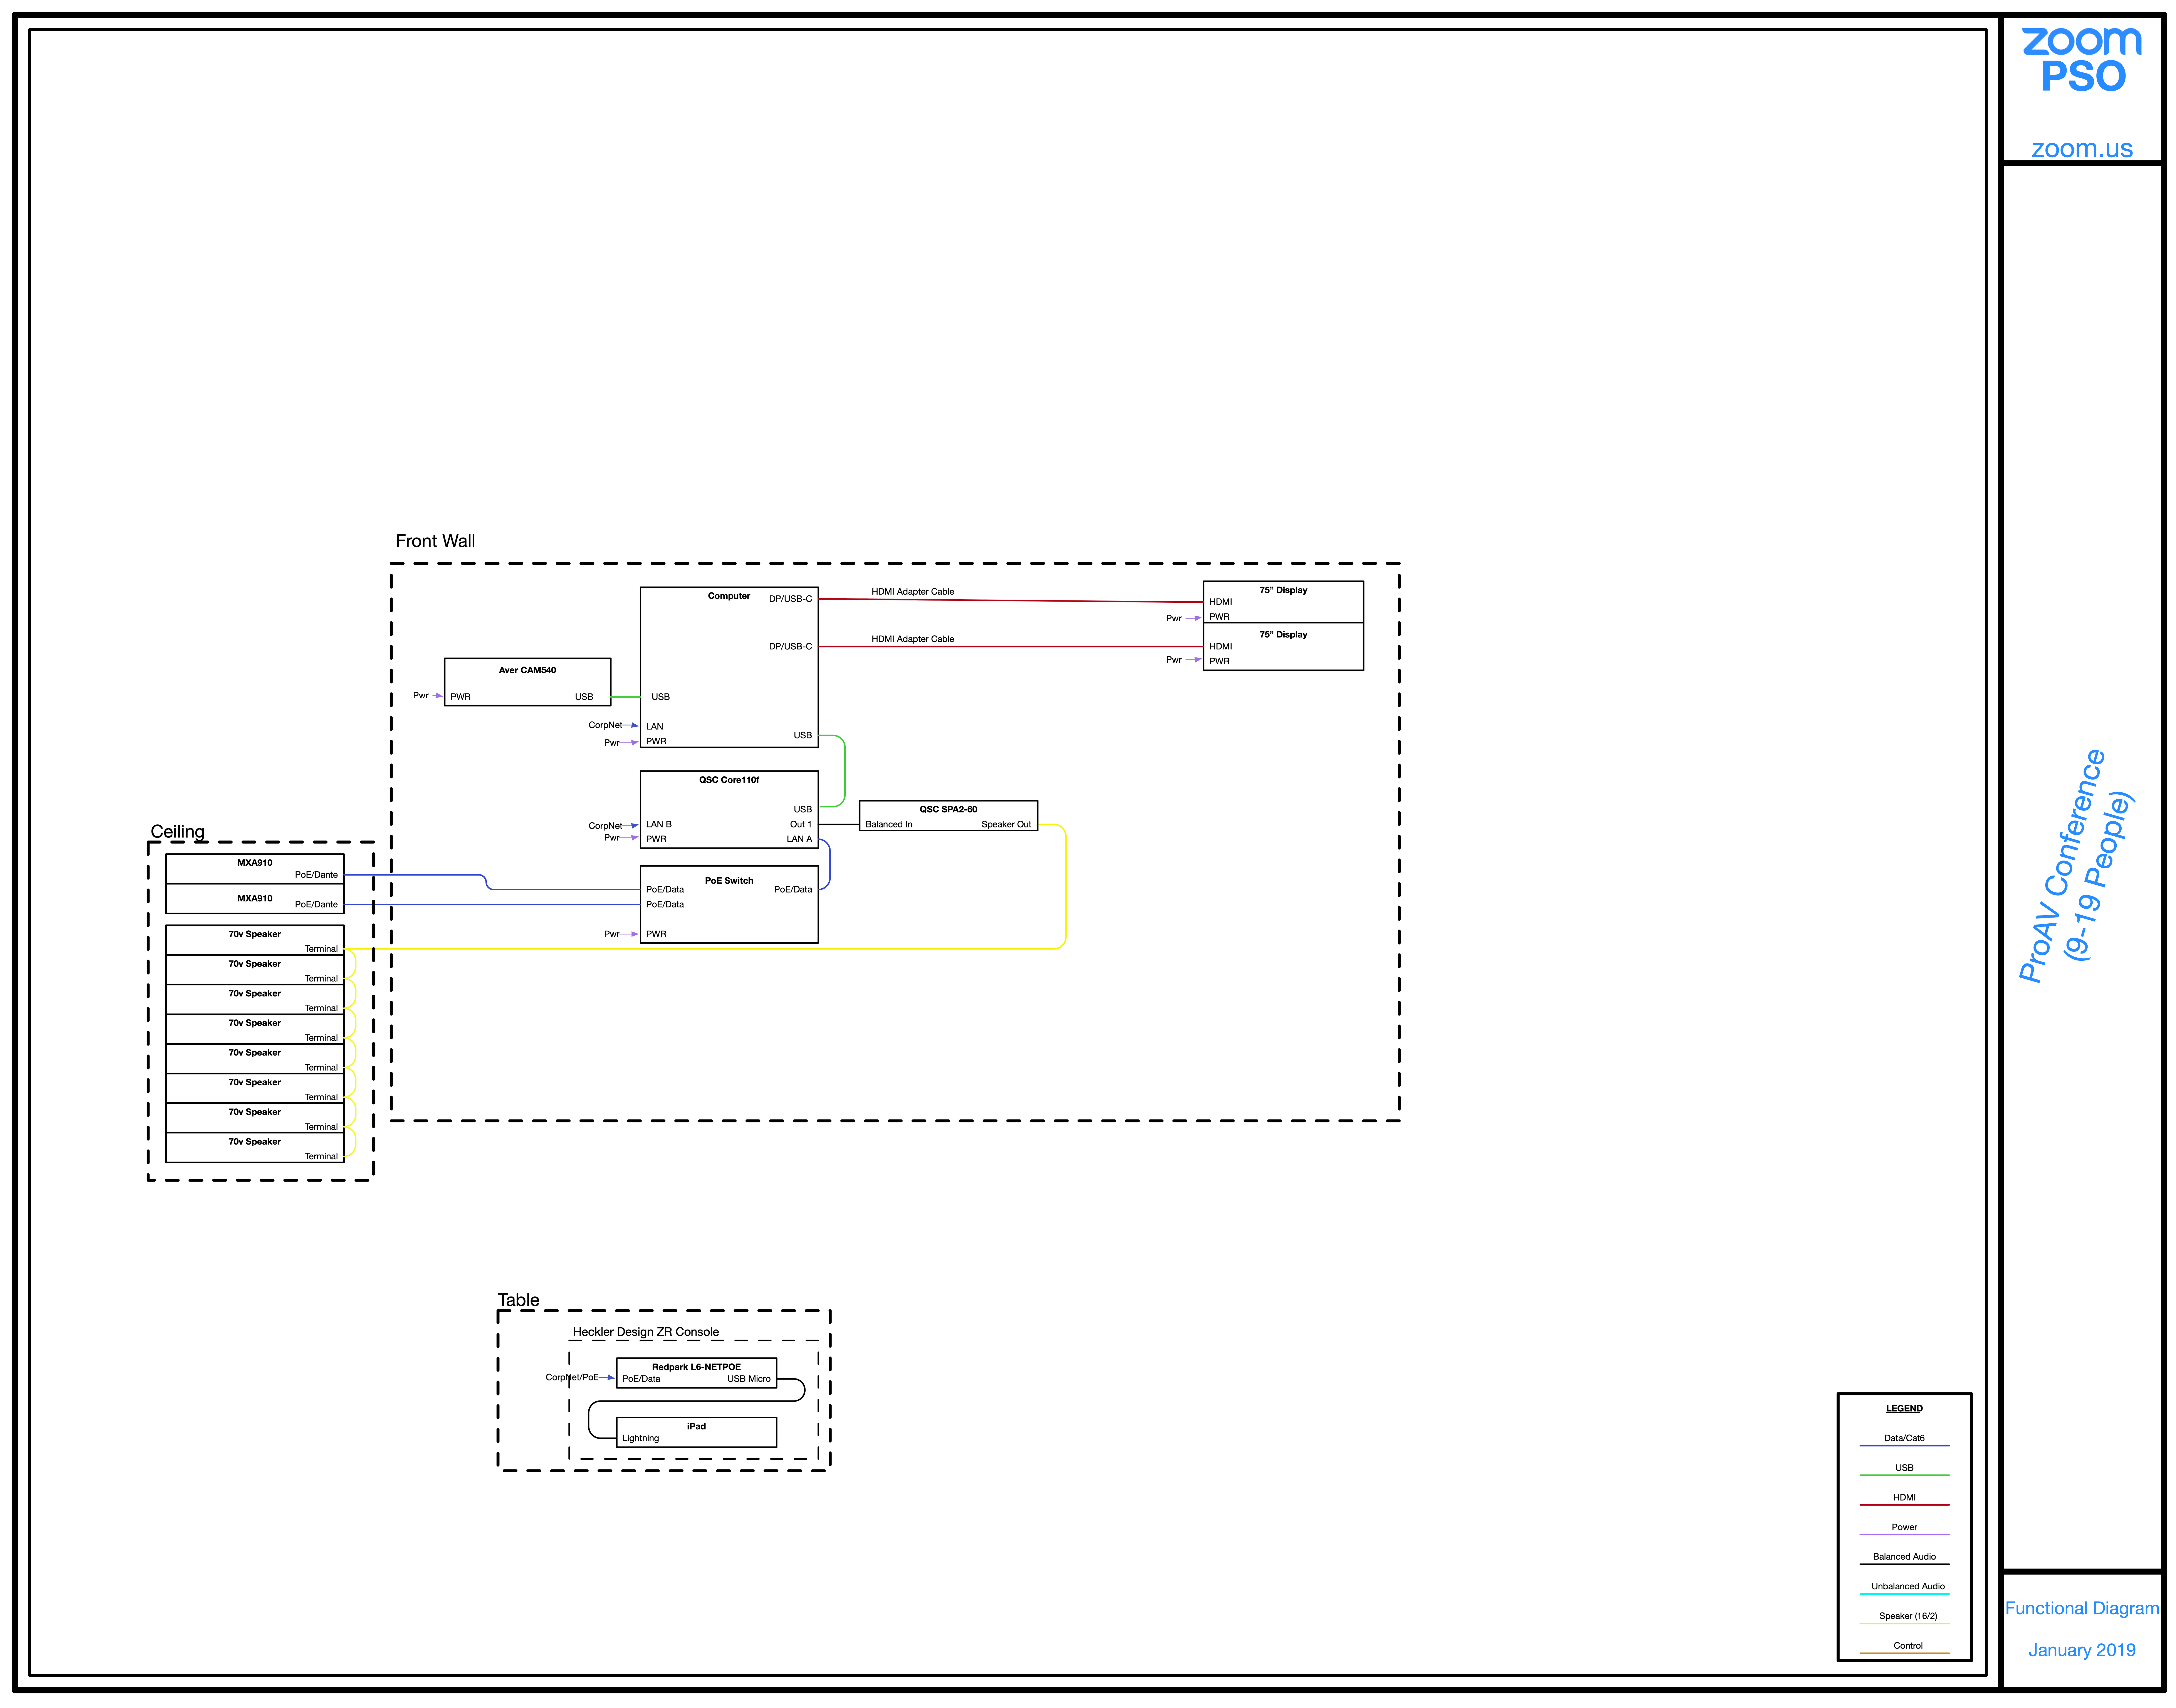 Functional_Diagram_-_Zoom_Rooms_ProAV__9-19_People_.png